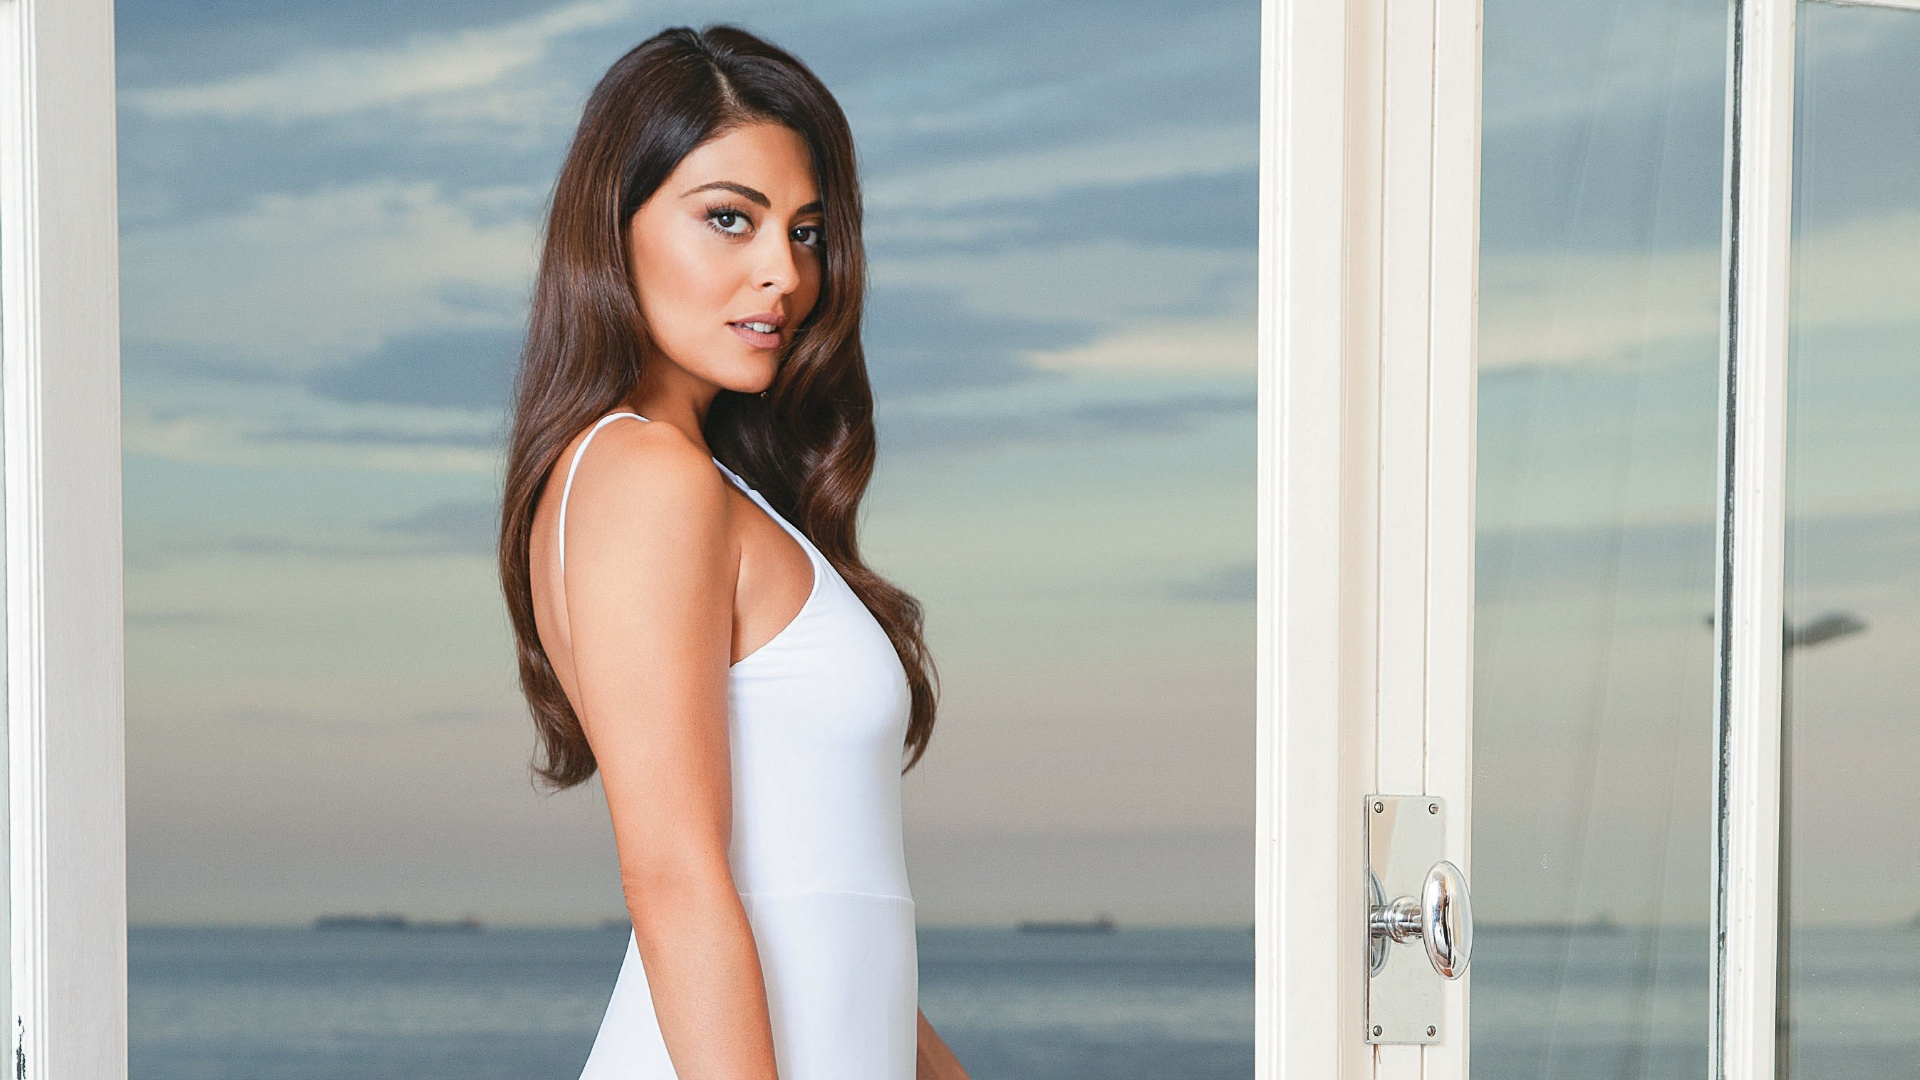 Juliana Paes em ensaio para a revista 